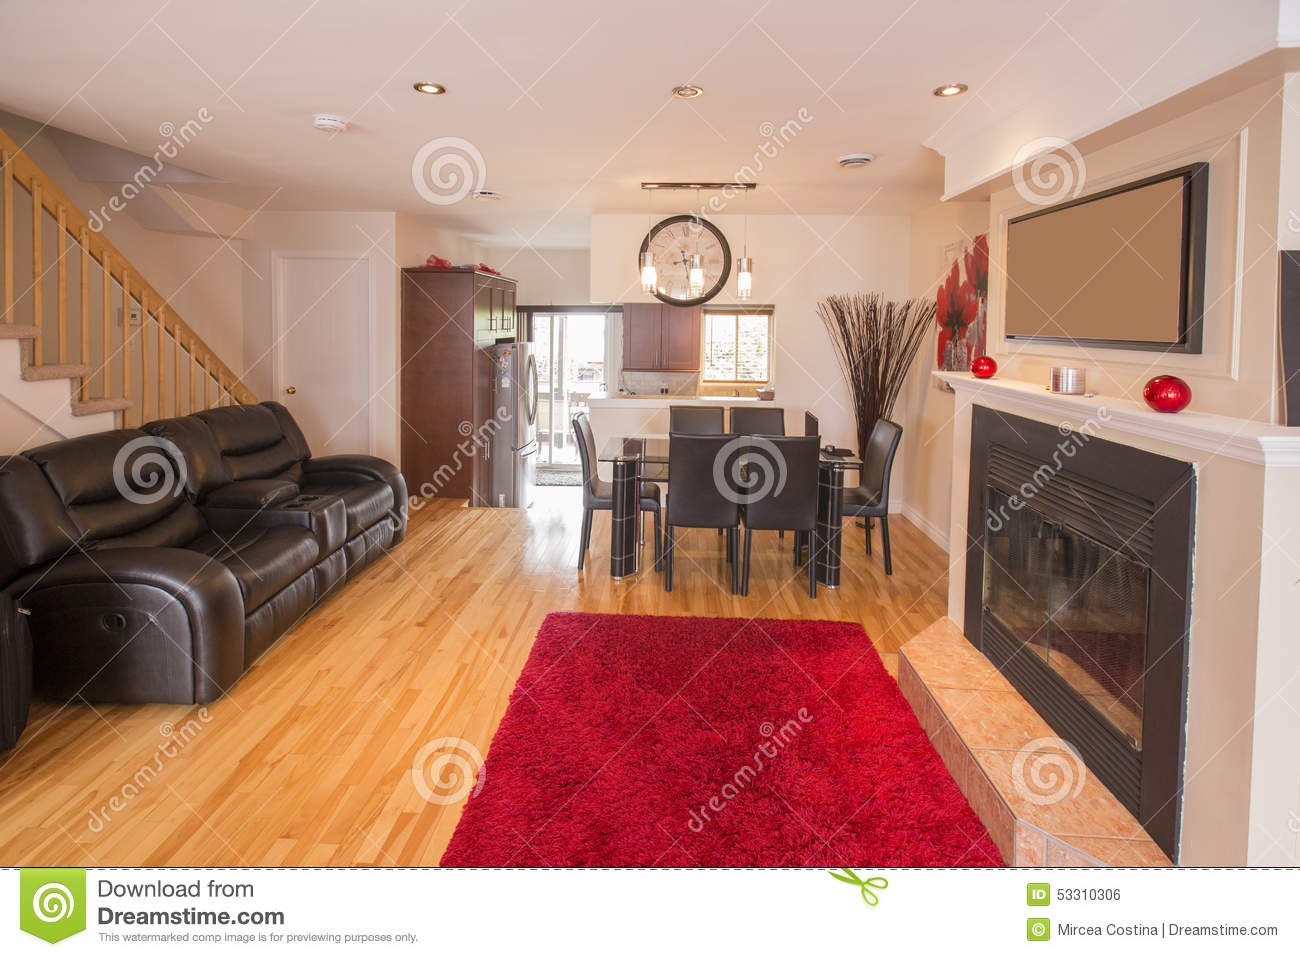 Salon rouge et gris photo stock image 53310306 - Salon rouge et gris ...